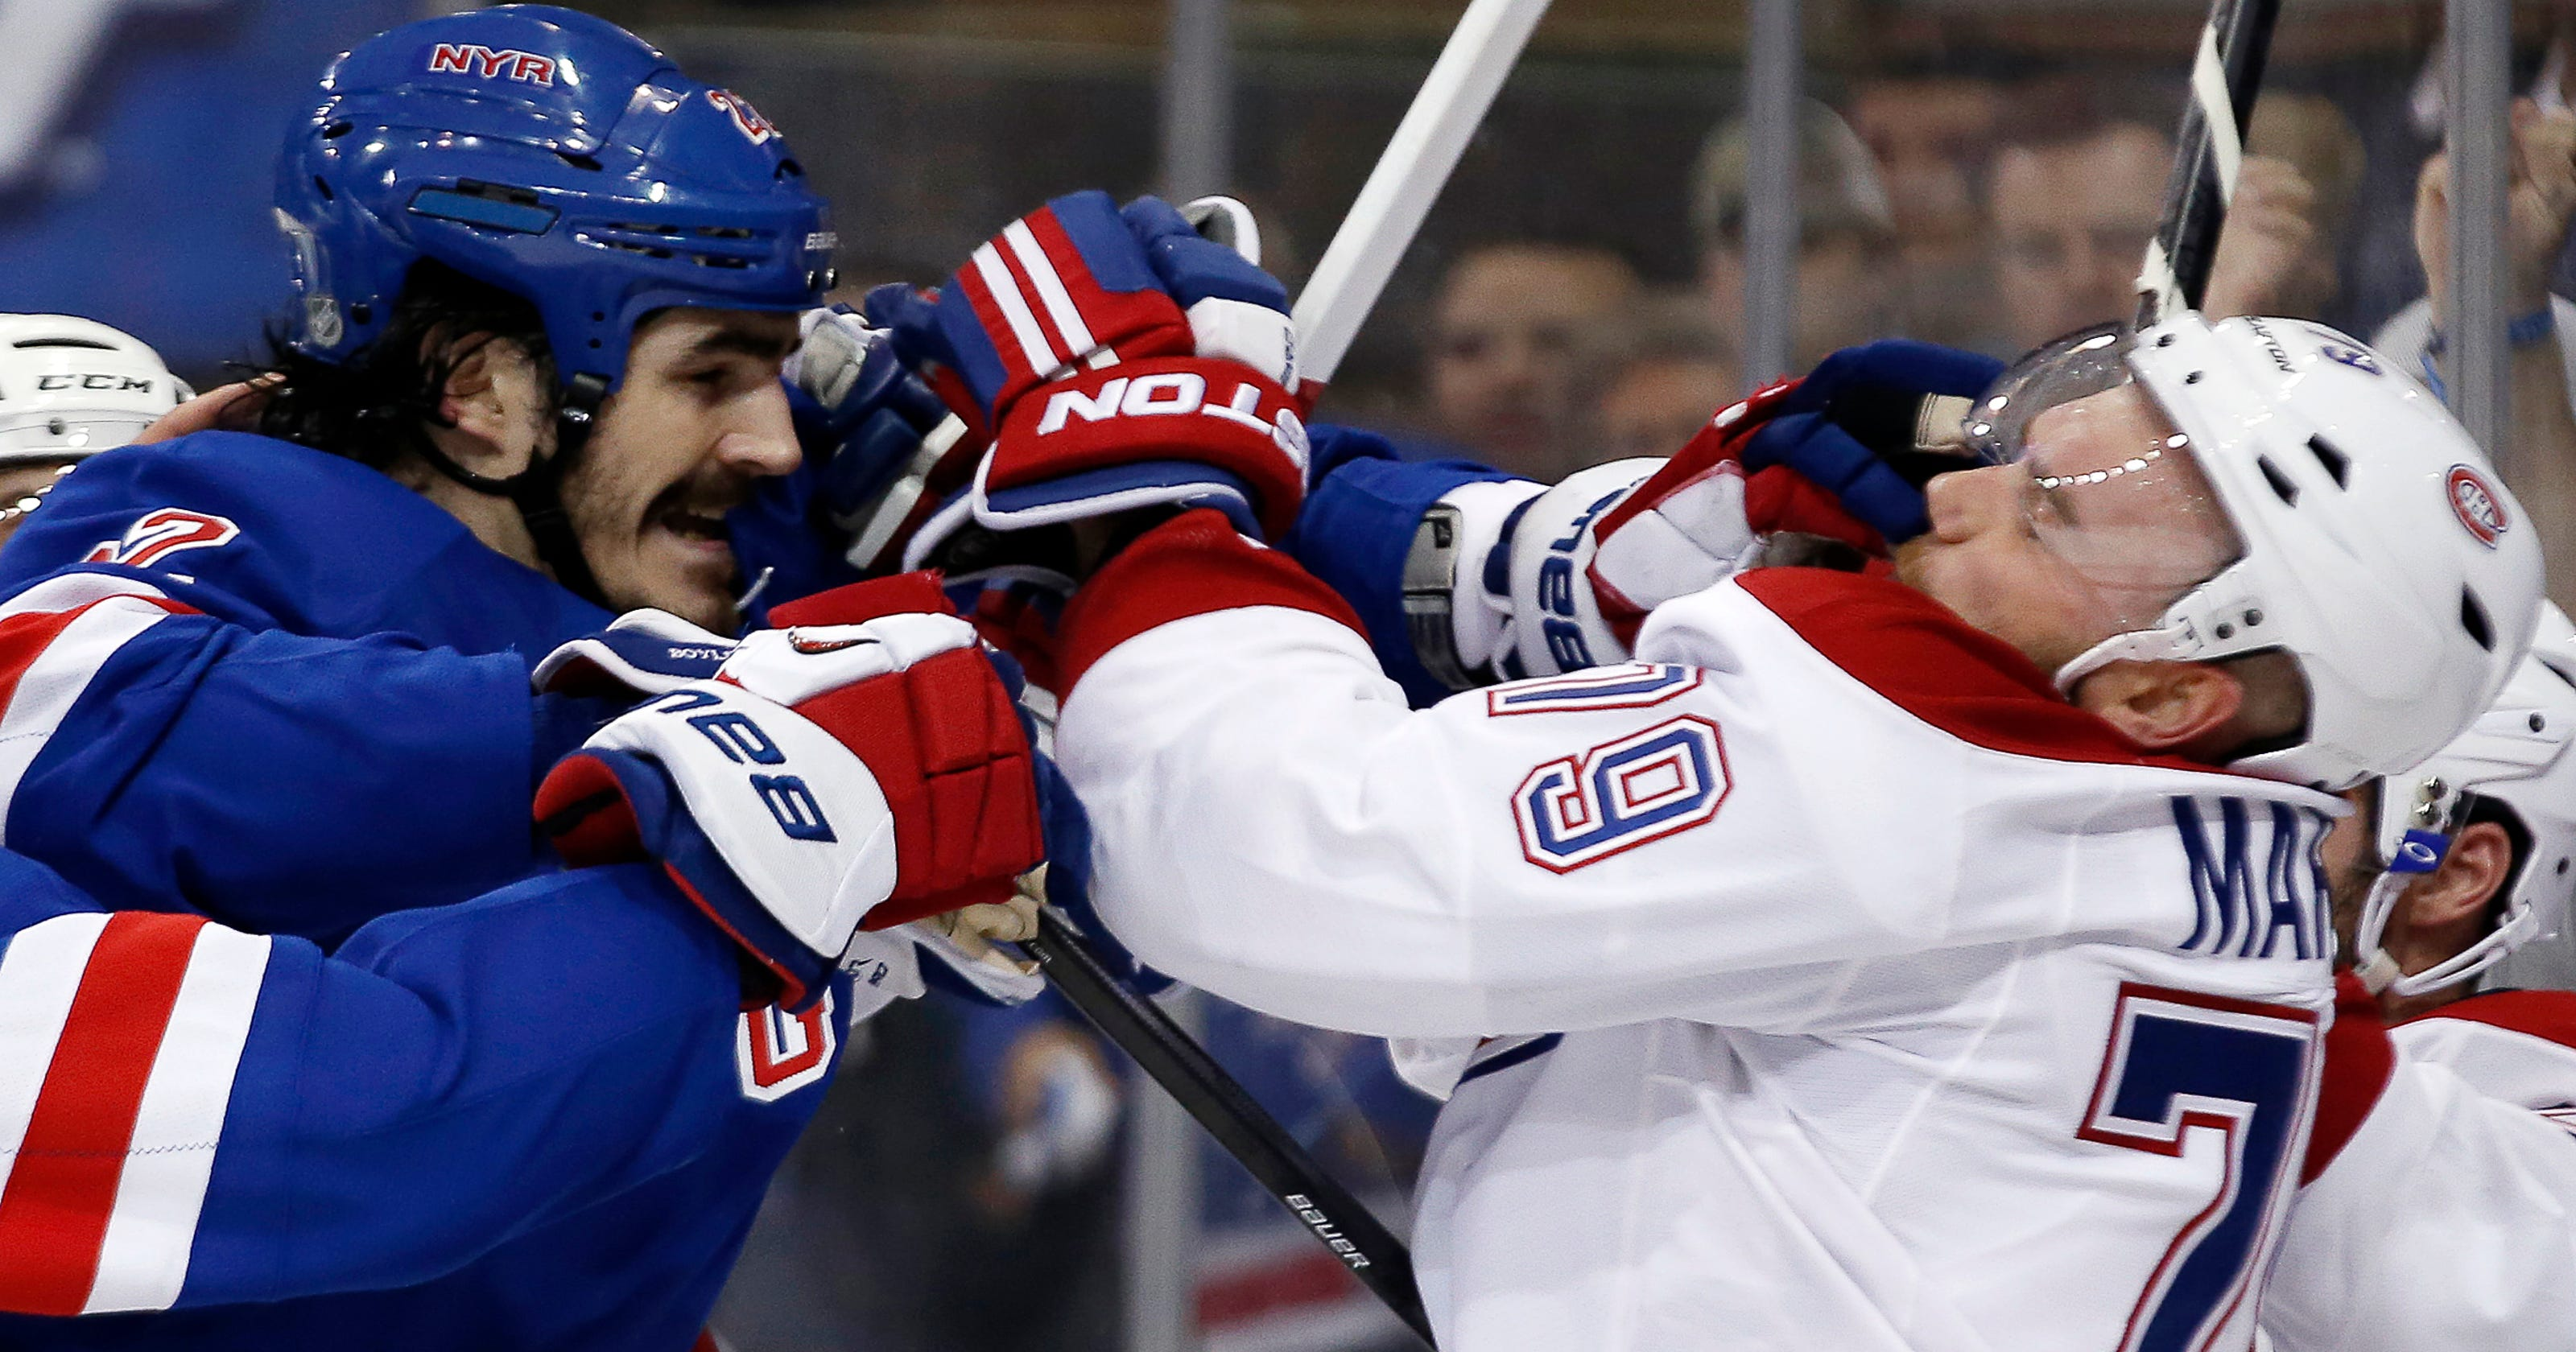 Rangers move within 1 win of Stanley Cup finals 955007619